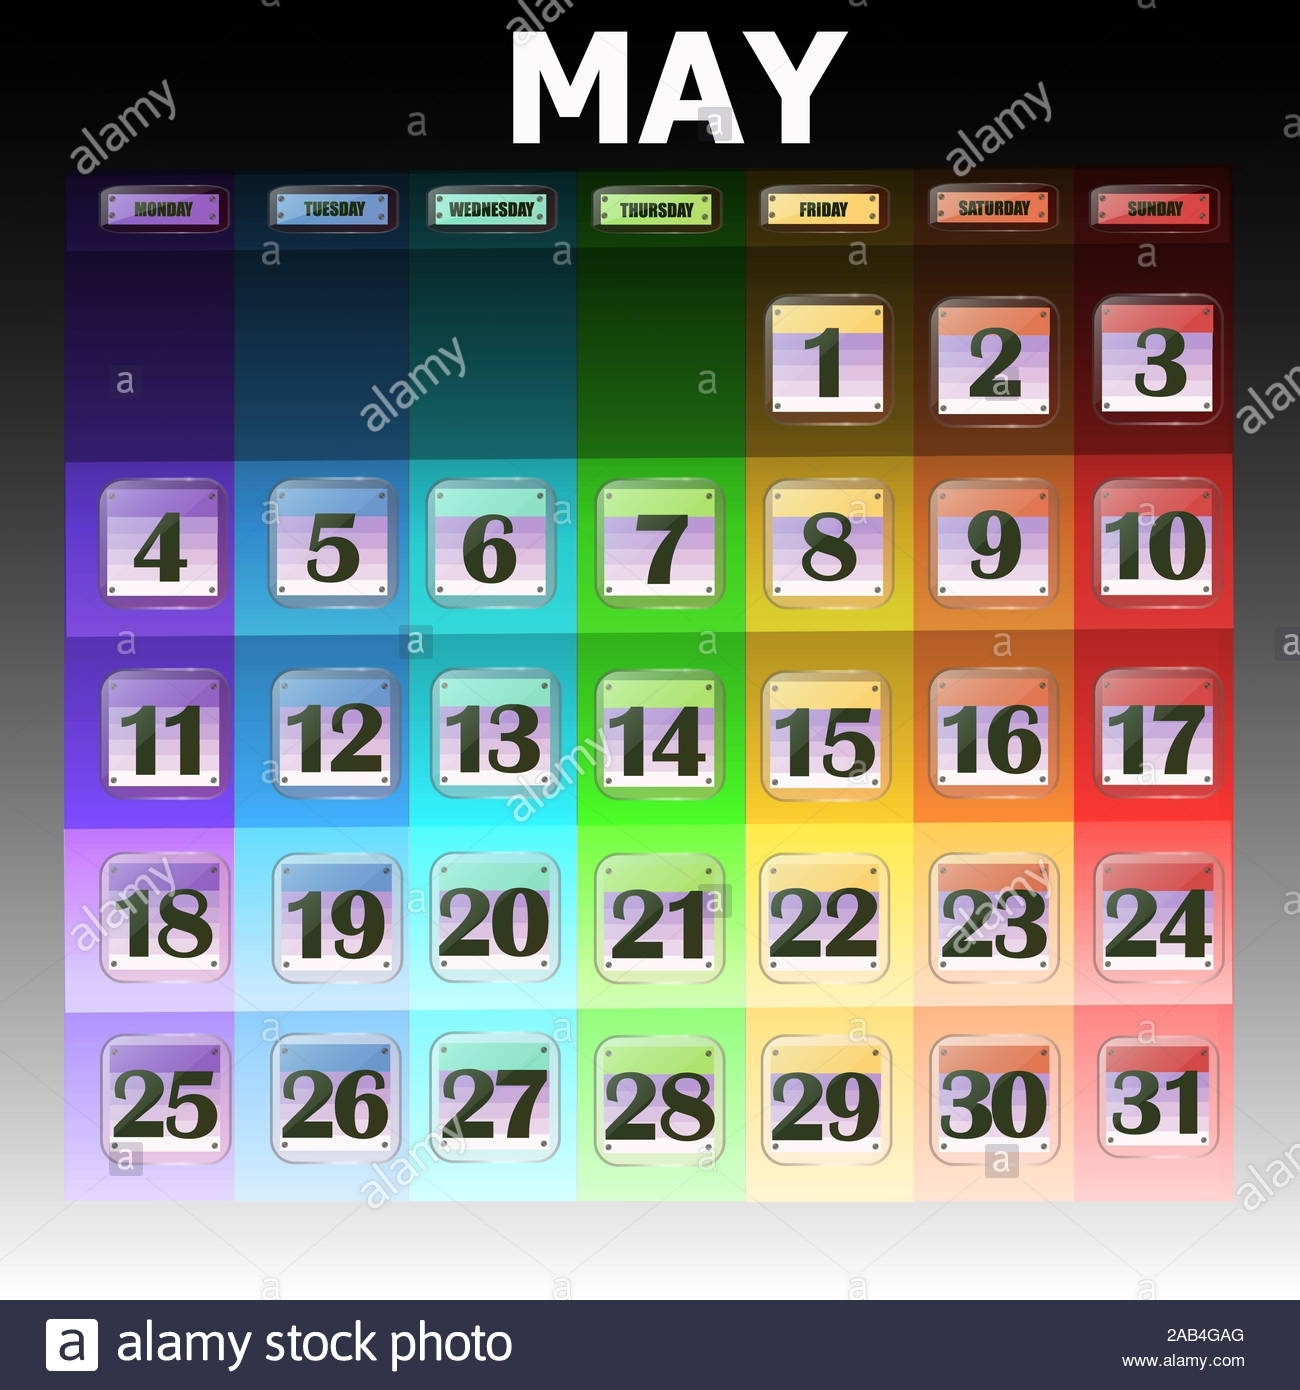 Colorful Calendar For May 2020 In English. Set Of Buttons throughout What Are Special Days In 2020